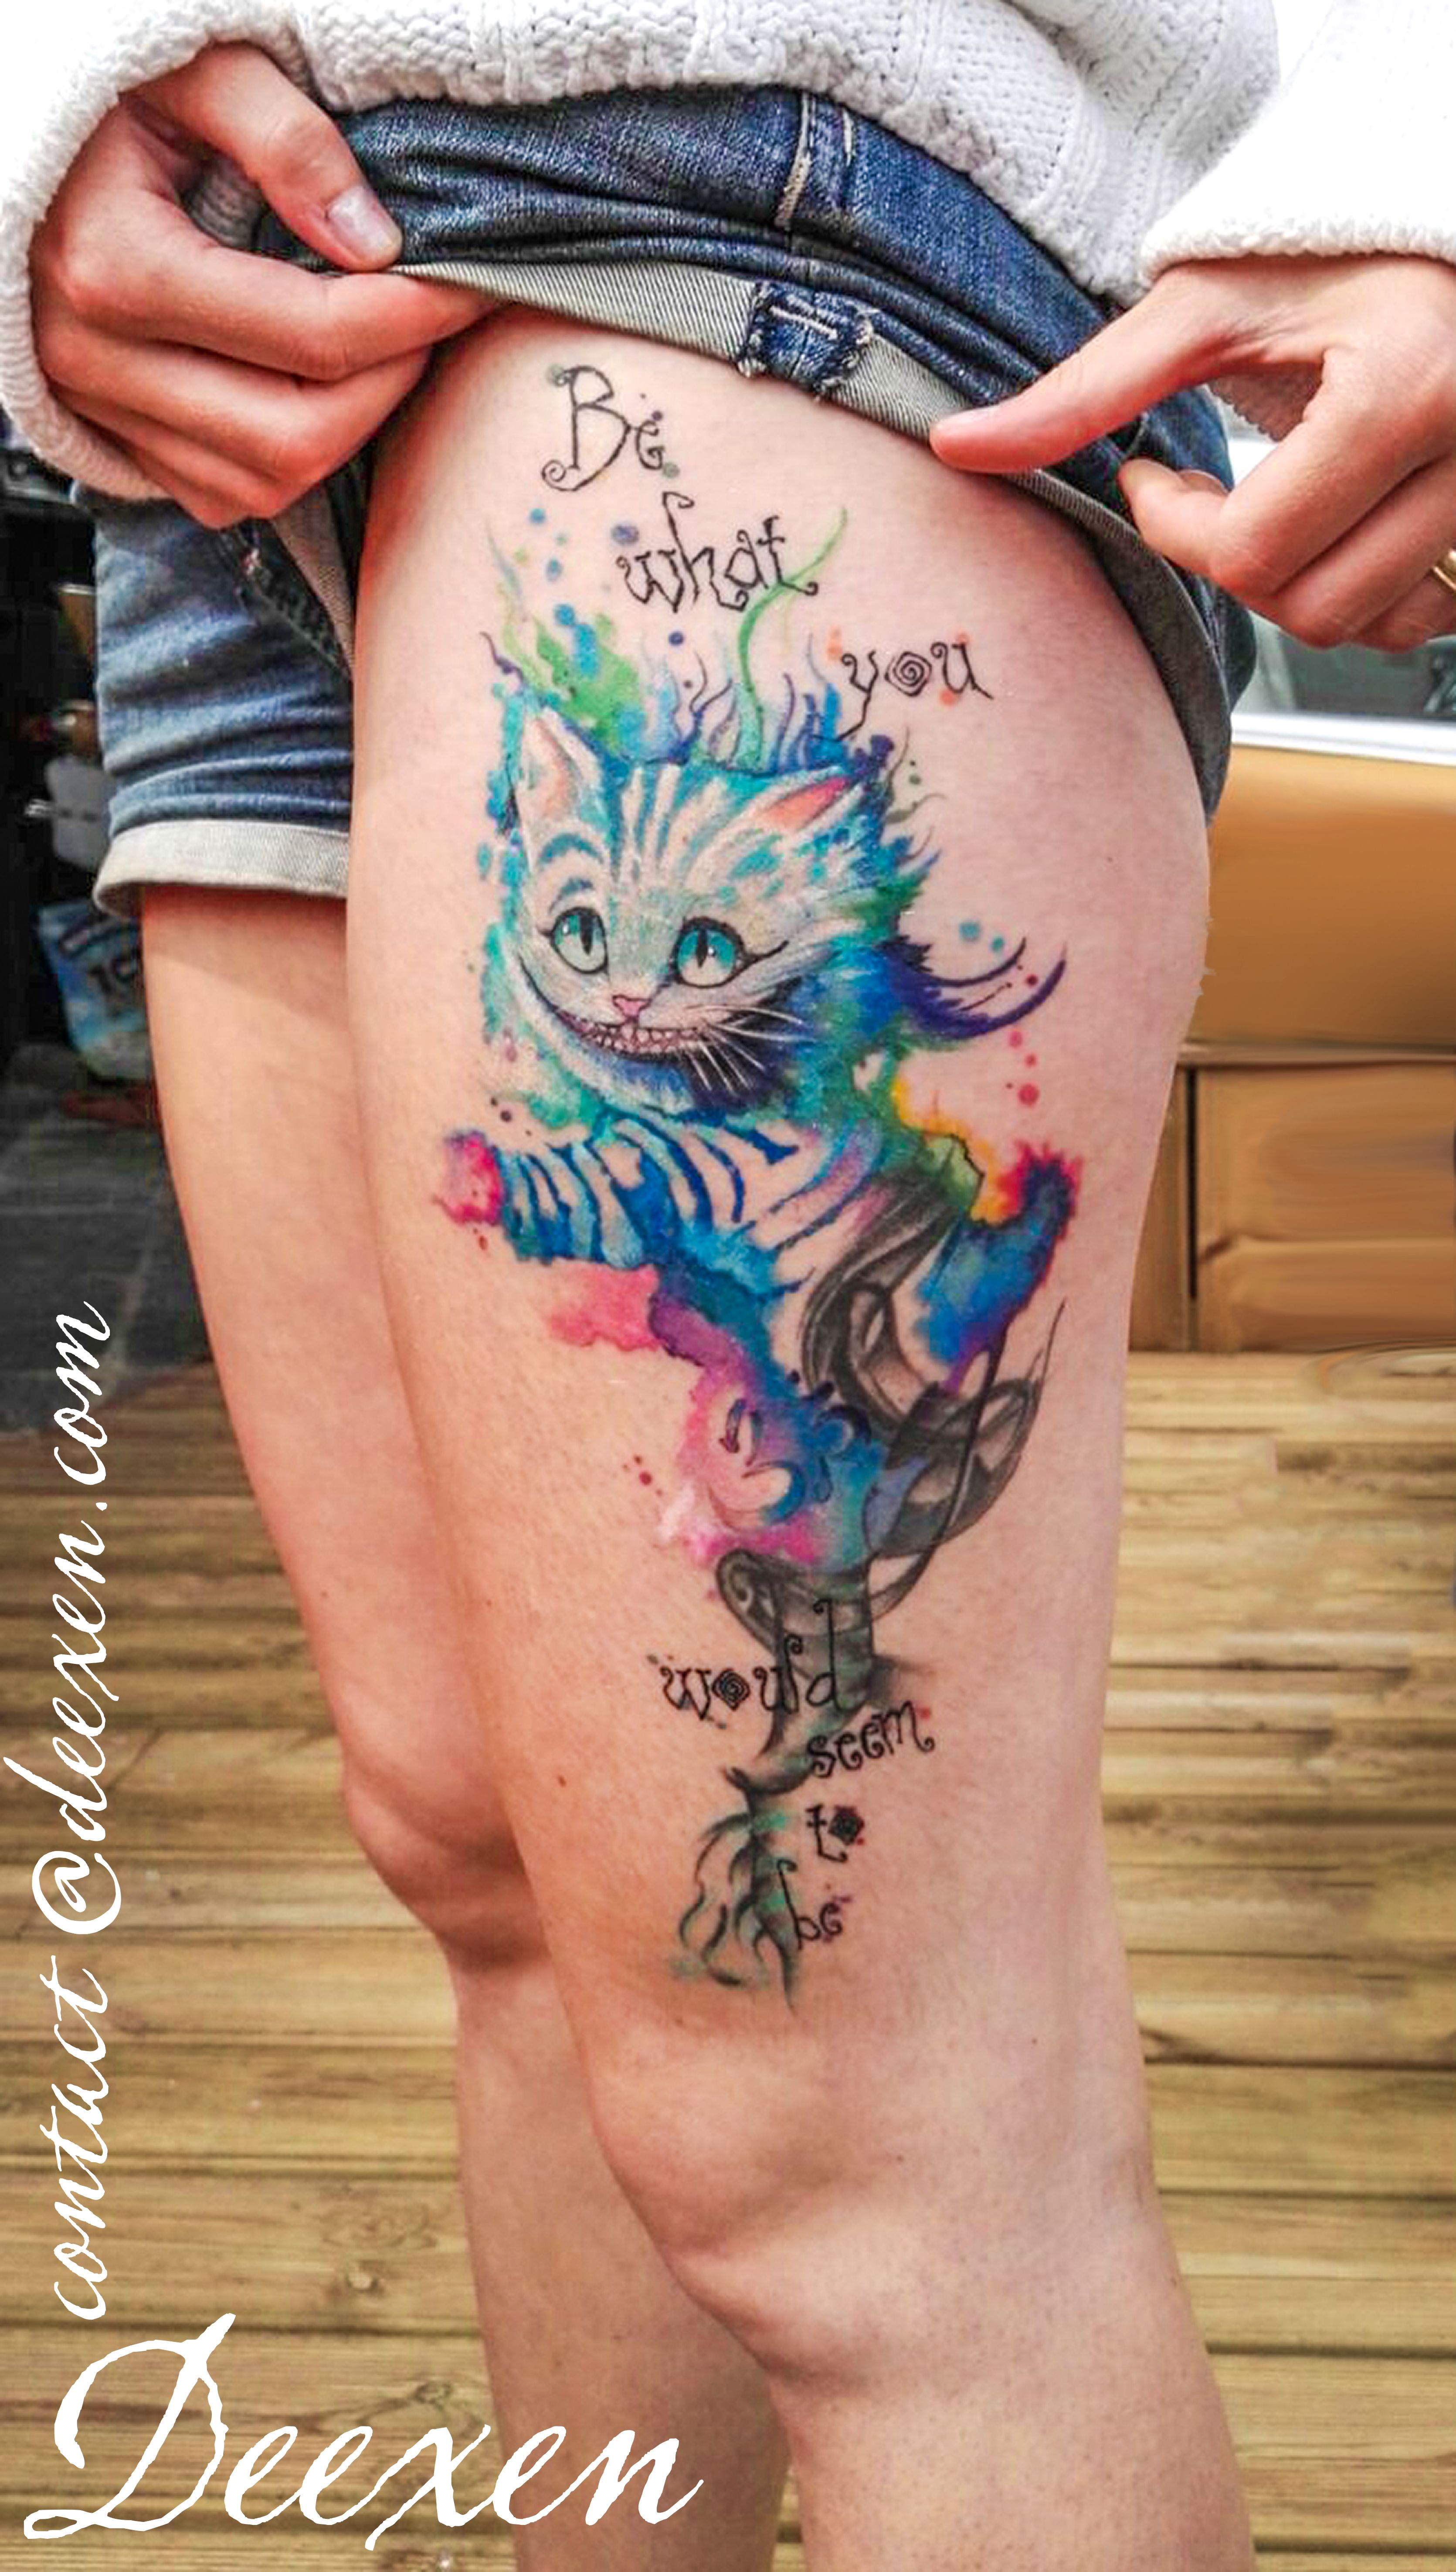 Be Really Tattoo Tatouage Tattoos Watercolor Graphicdesign Flower Deexen Cat Aliceinwonderland Abst Cheshire Cat Tattoo Wonderland Tattoo Leg Tattoos